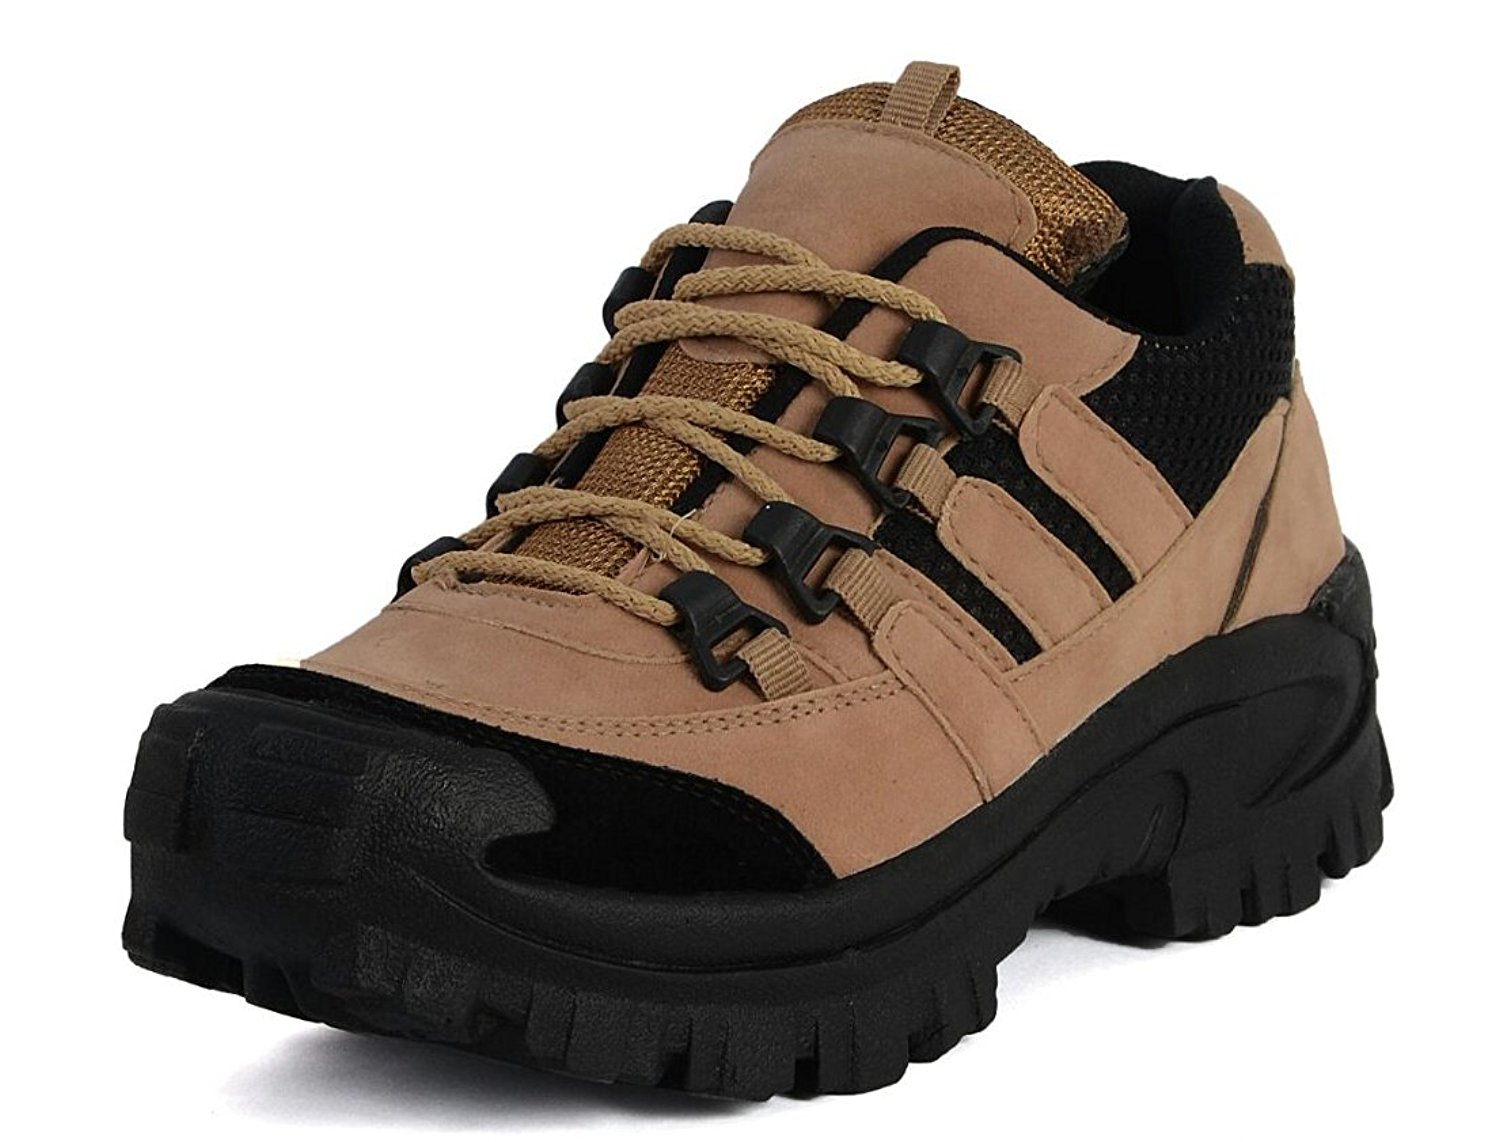 t-rock men's hiking shoes